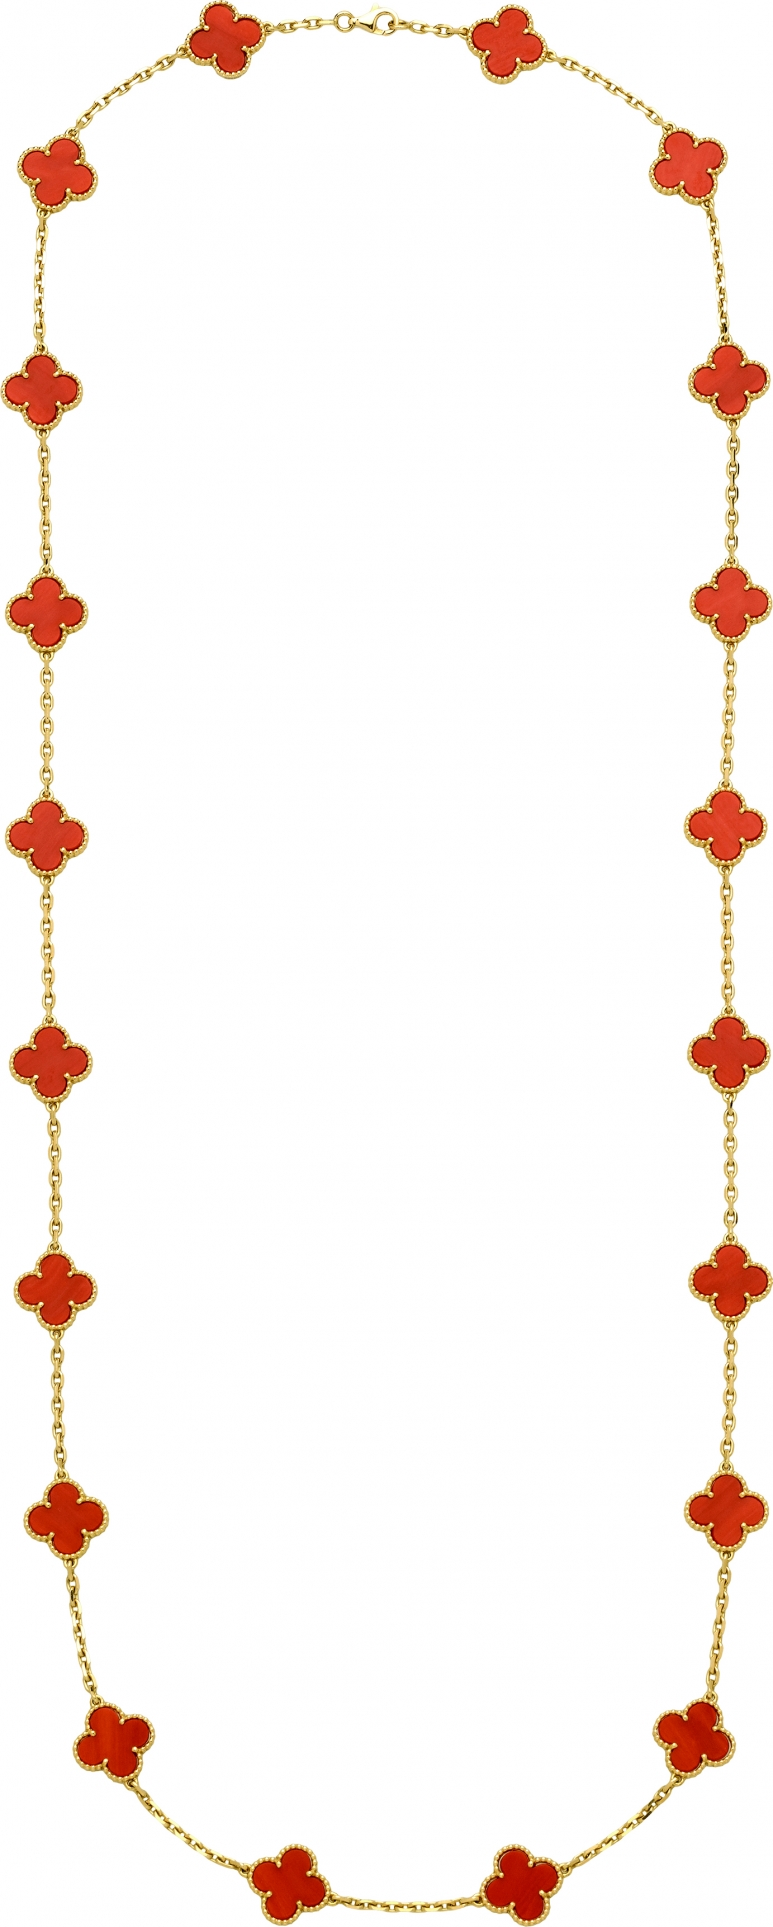 VCA_VINTAGE ALHAMBRA 20-MOTIF LONG NECKLACE , YELLOW GOLD, CORAL_467884 copy.jpg